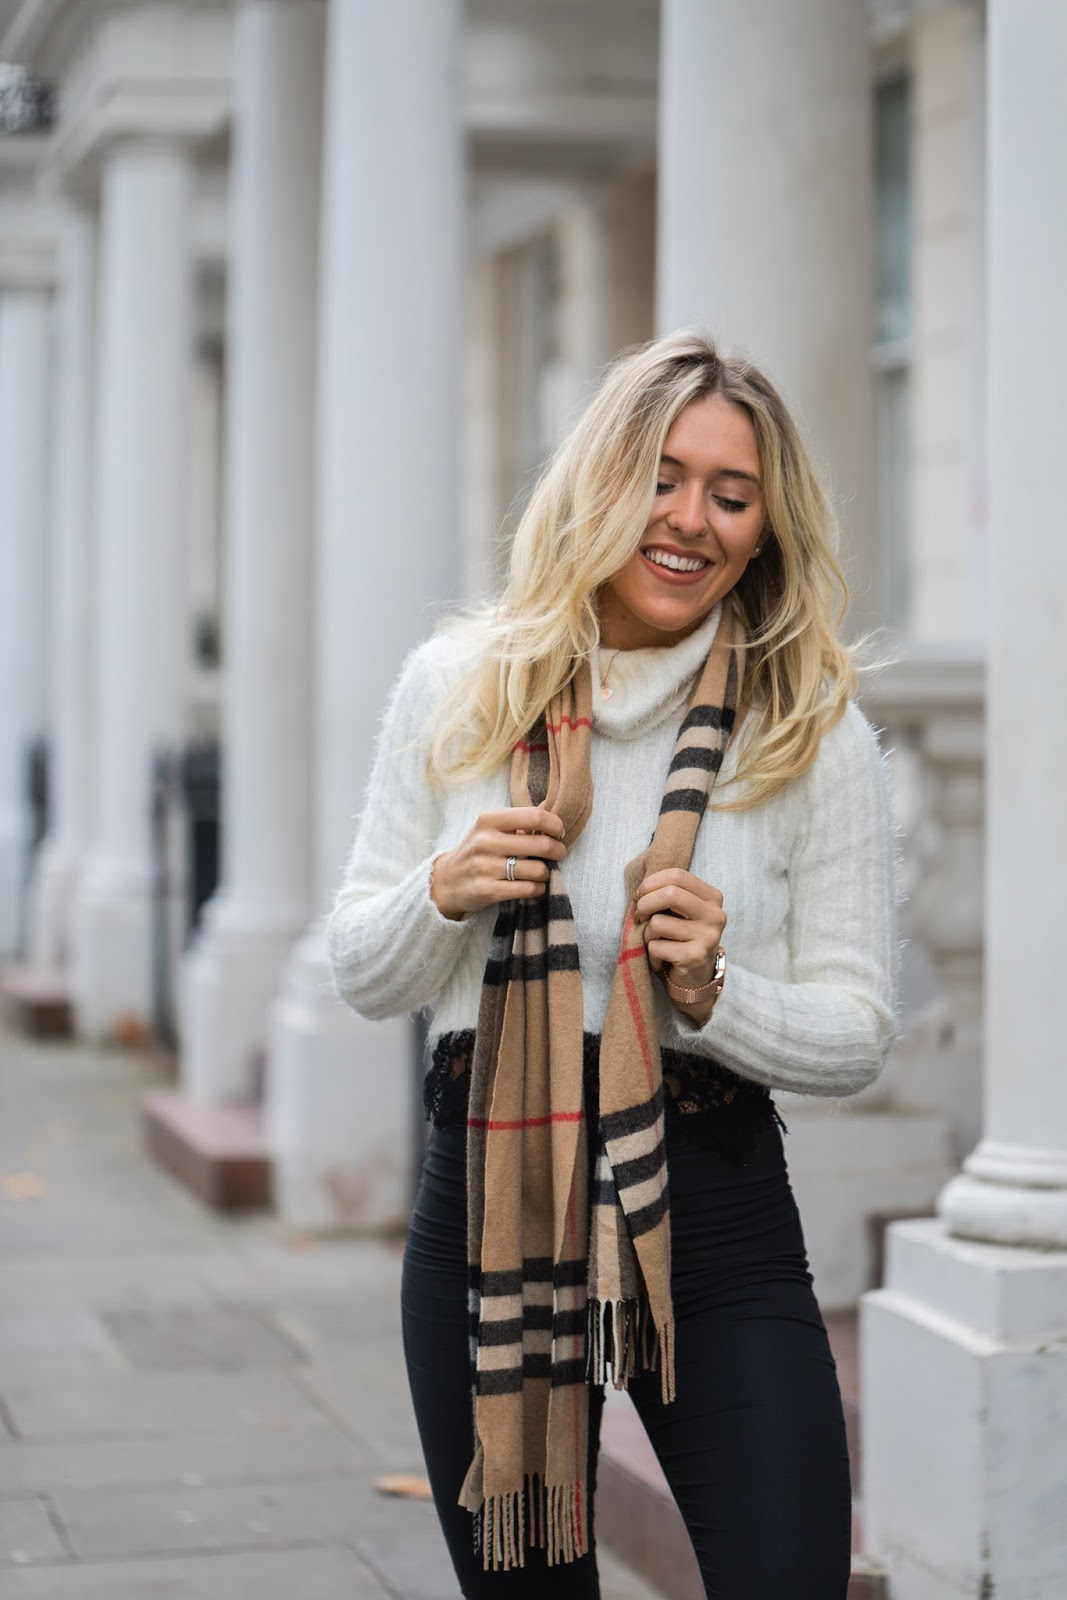 styling a burberry scarf